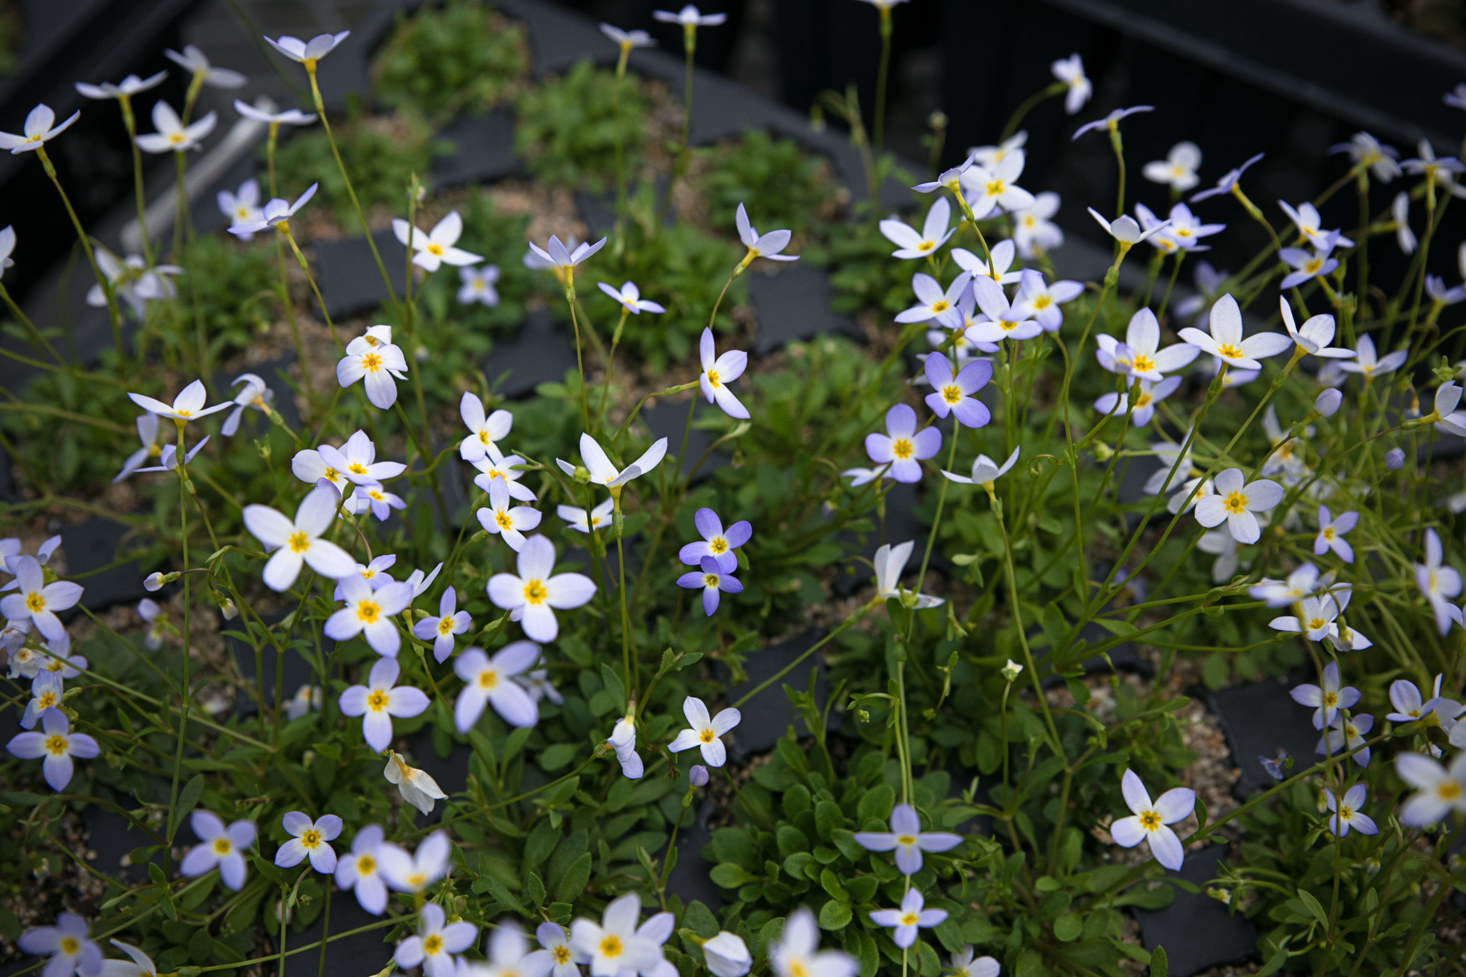 A spring-time favorite, cheerful bluets greet the day.